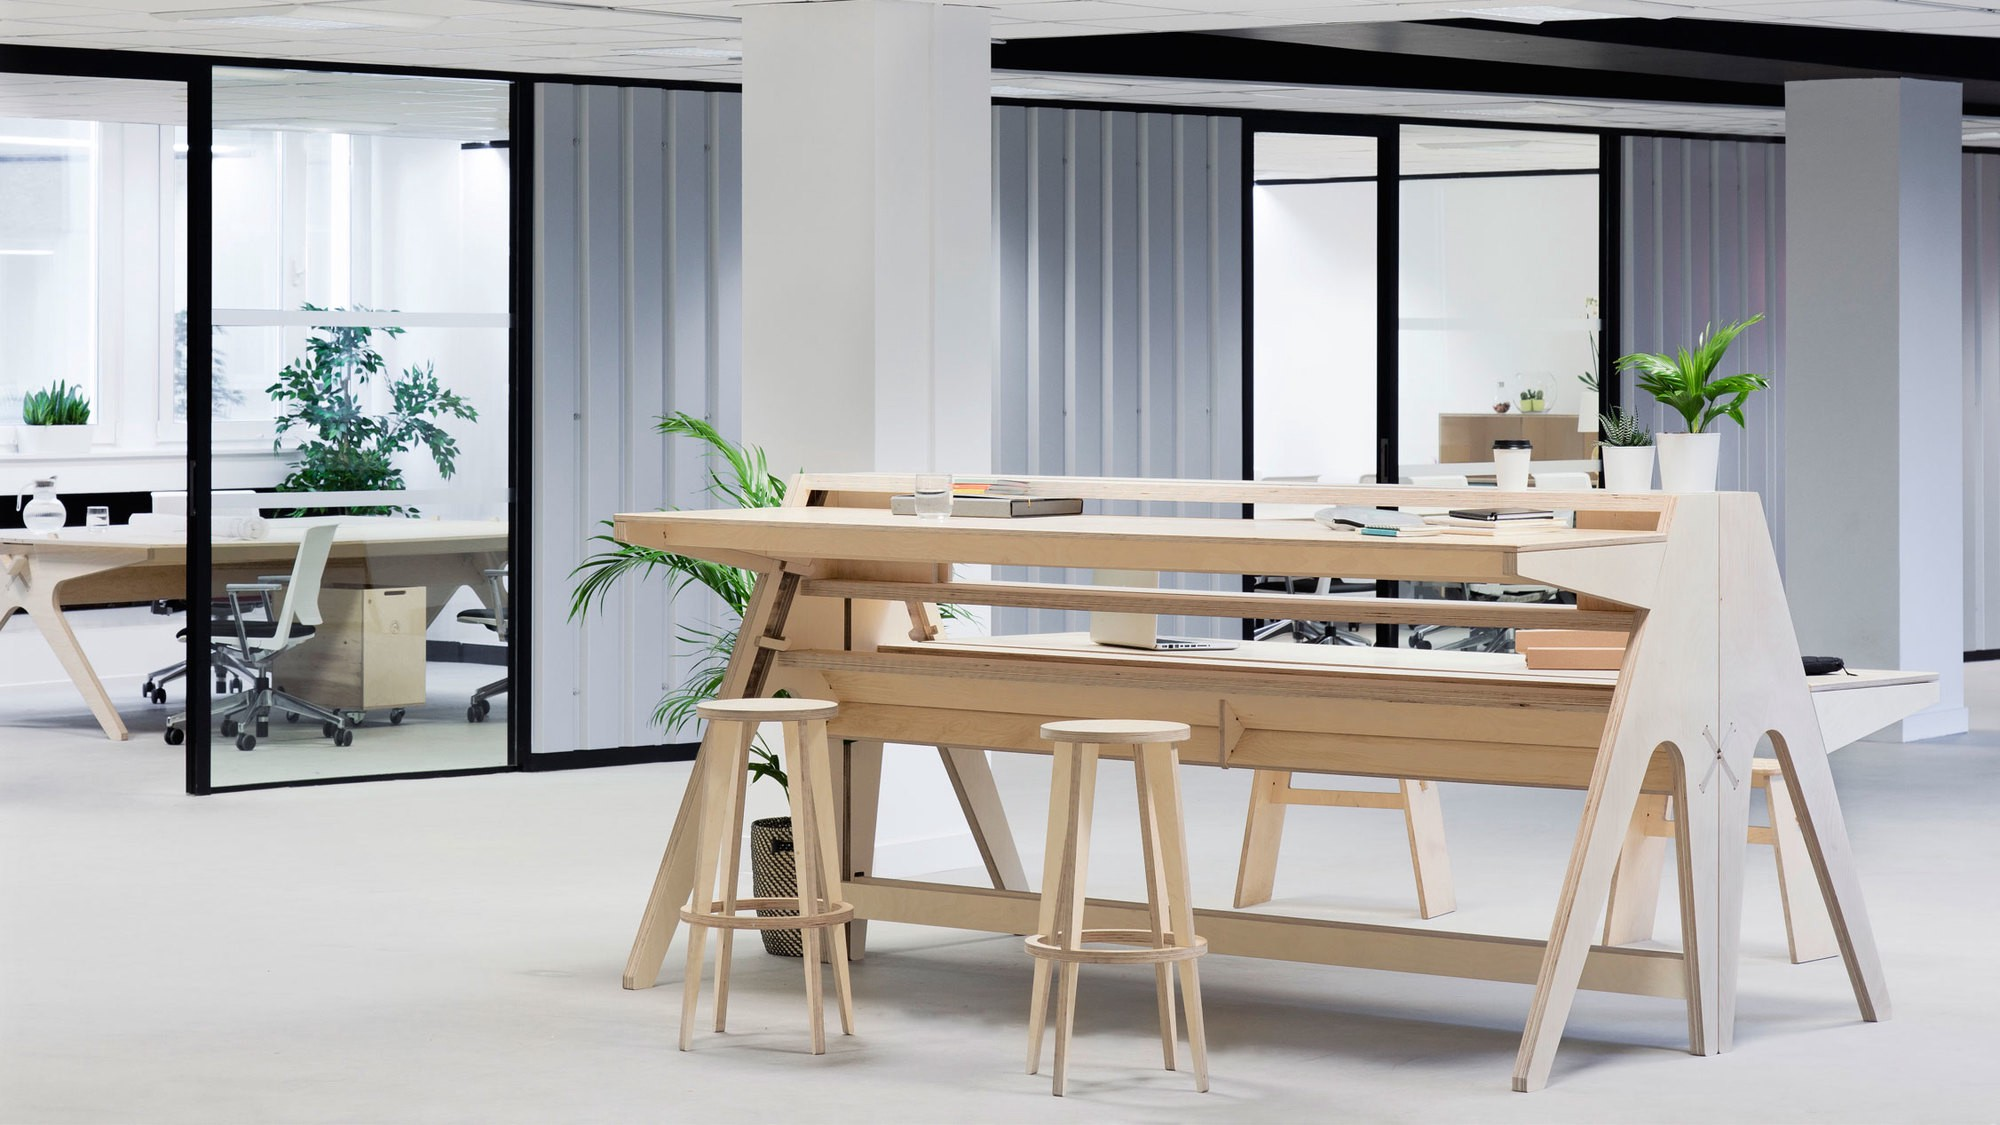 TMRW An Inspiring Coworking Space In Croydon Opendesk Medium - Stand up meeting table